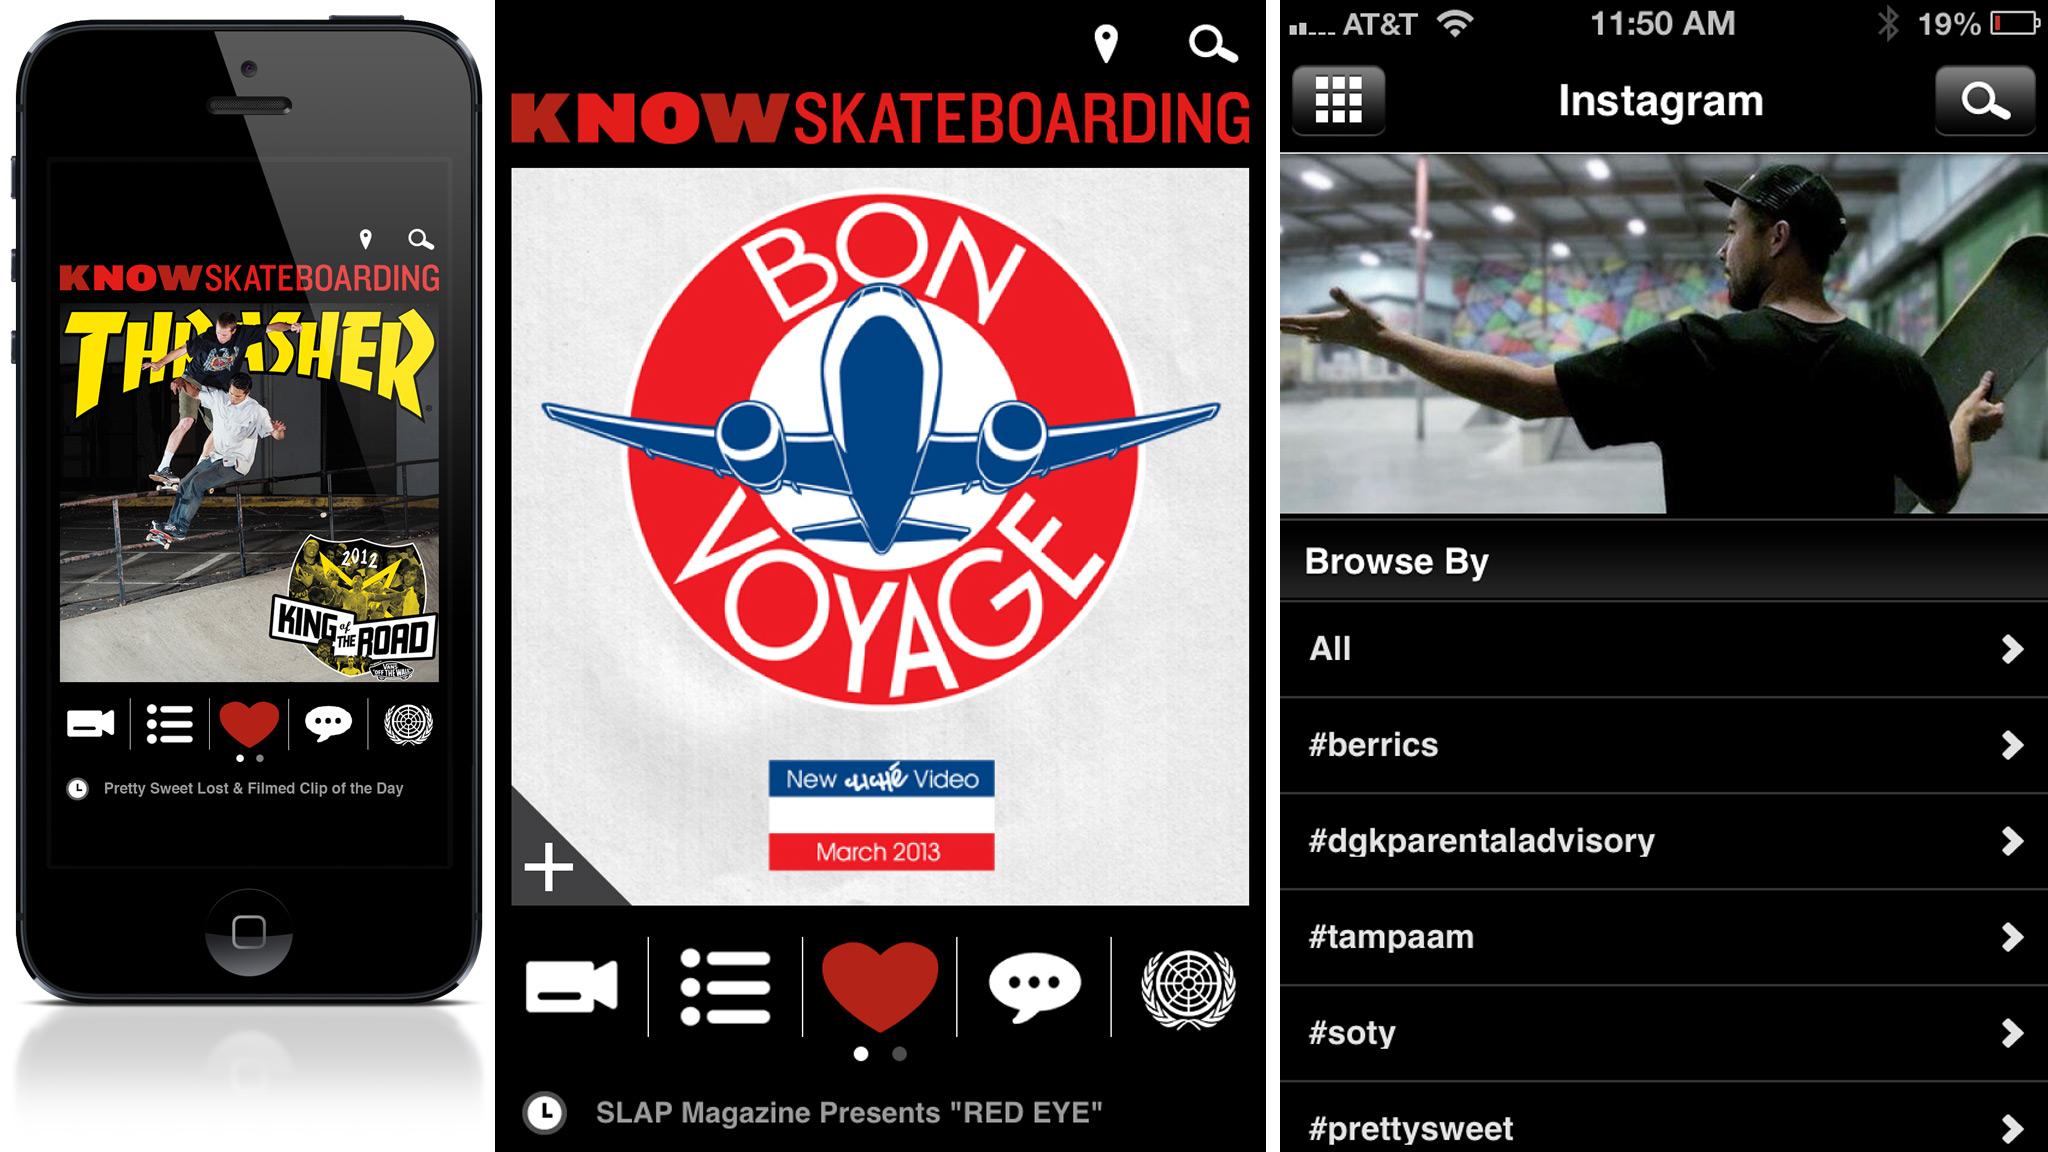 The Know Skateboarding app brings the web to skateboarders fingertips.